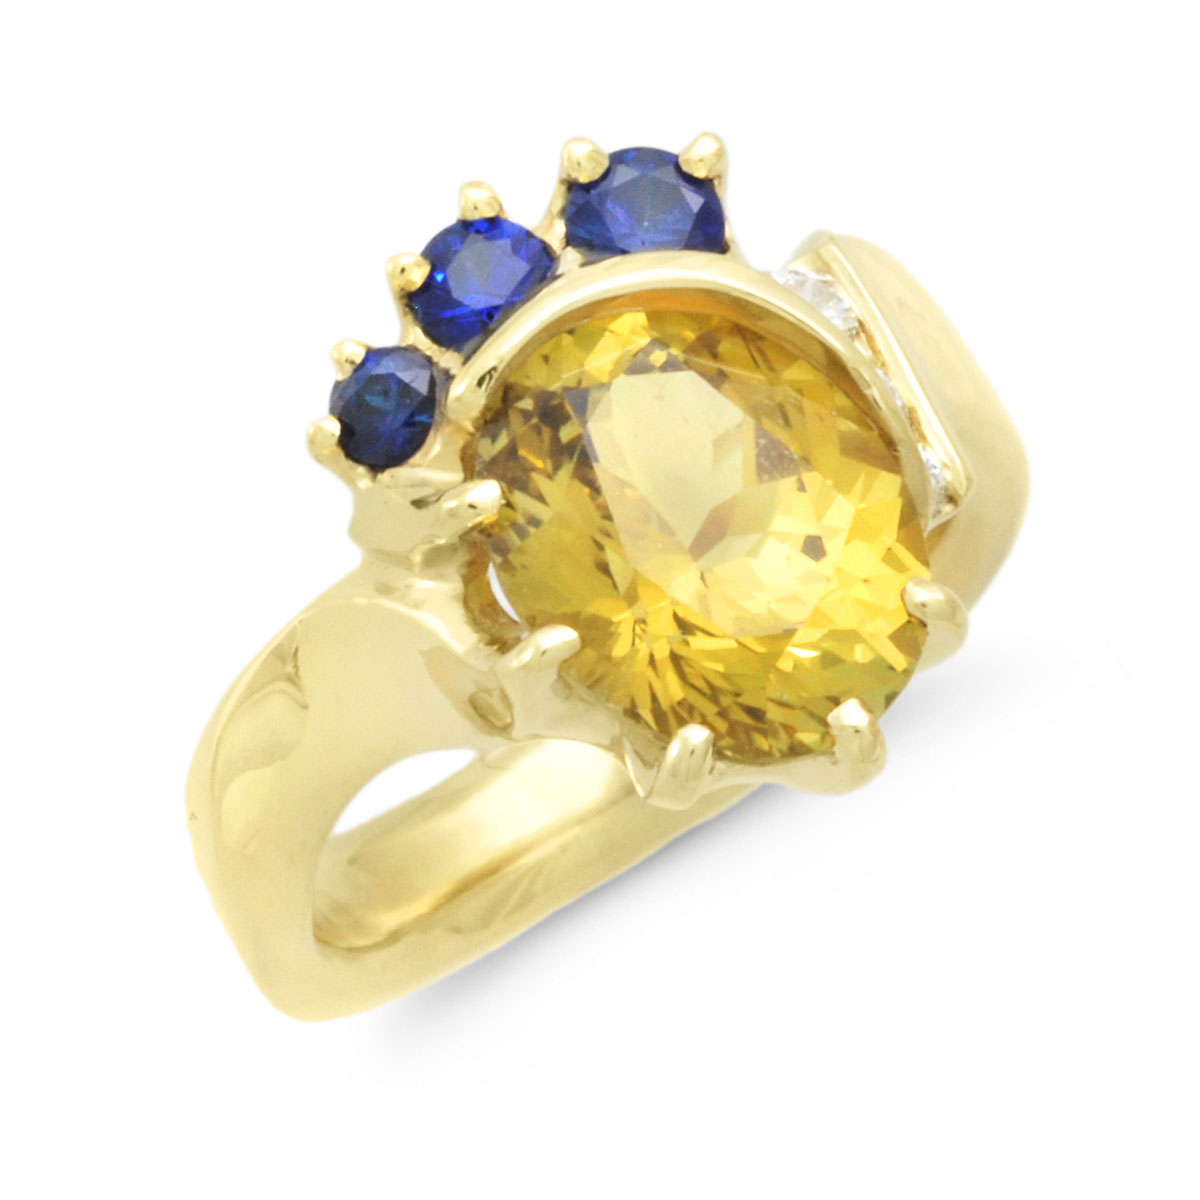 IND0991 Chrysoberyl and Sapphire Ring